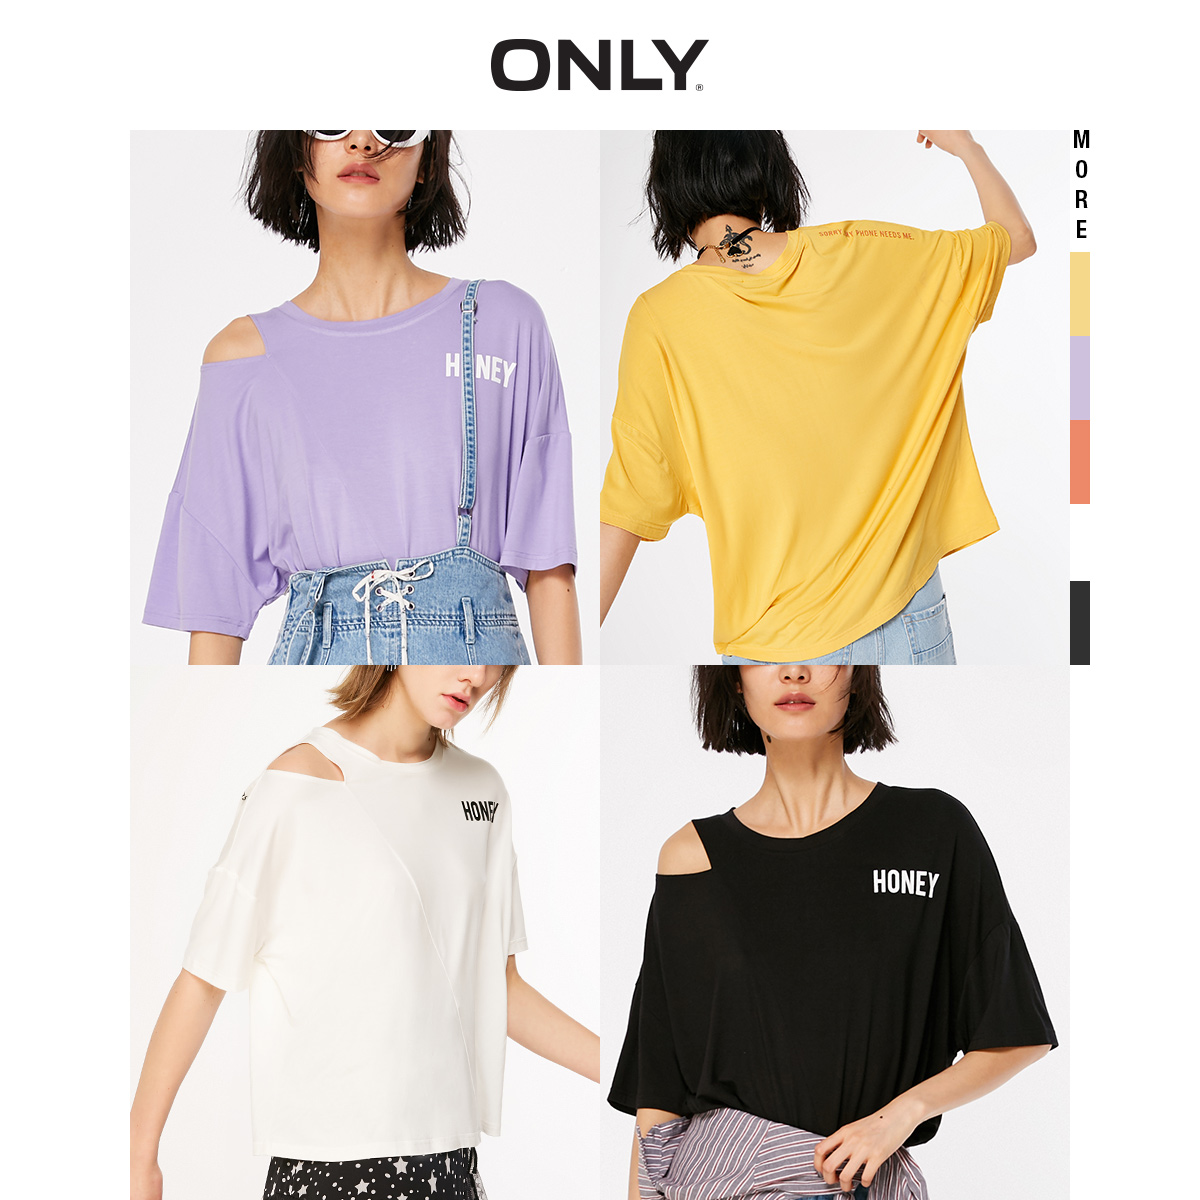 ONLY Women's Letter Print Off-the-shoulder Loose Fit Short-sleeved T-shirt 119201555